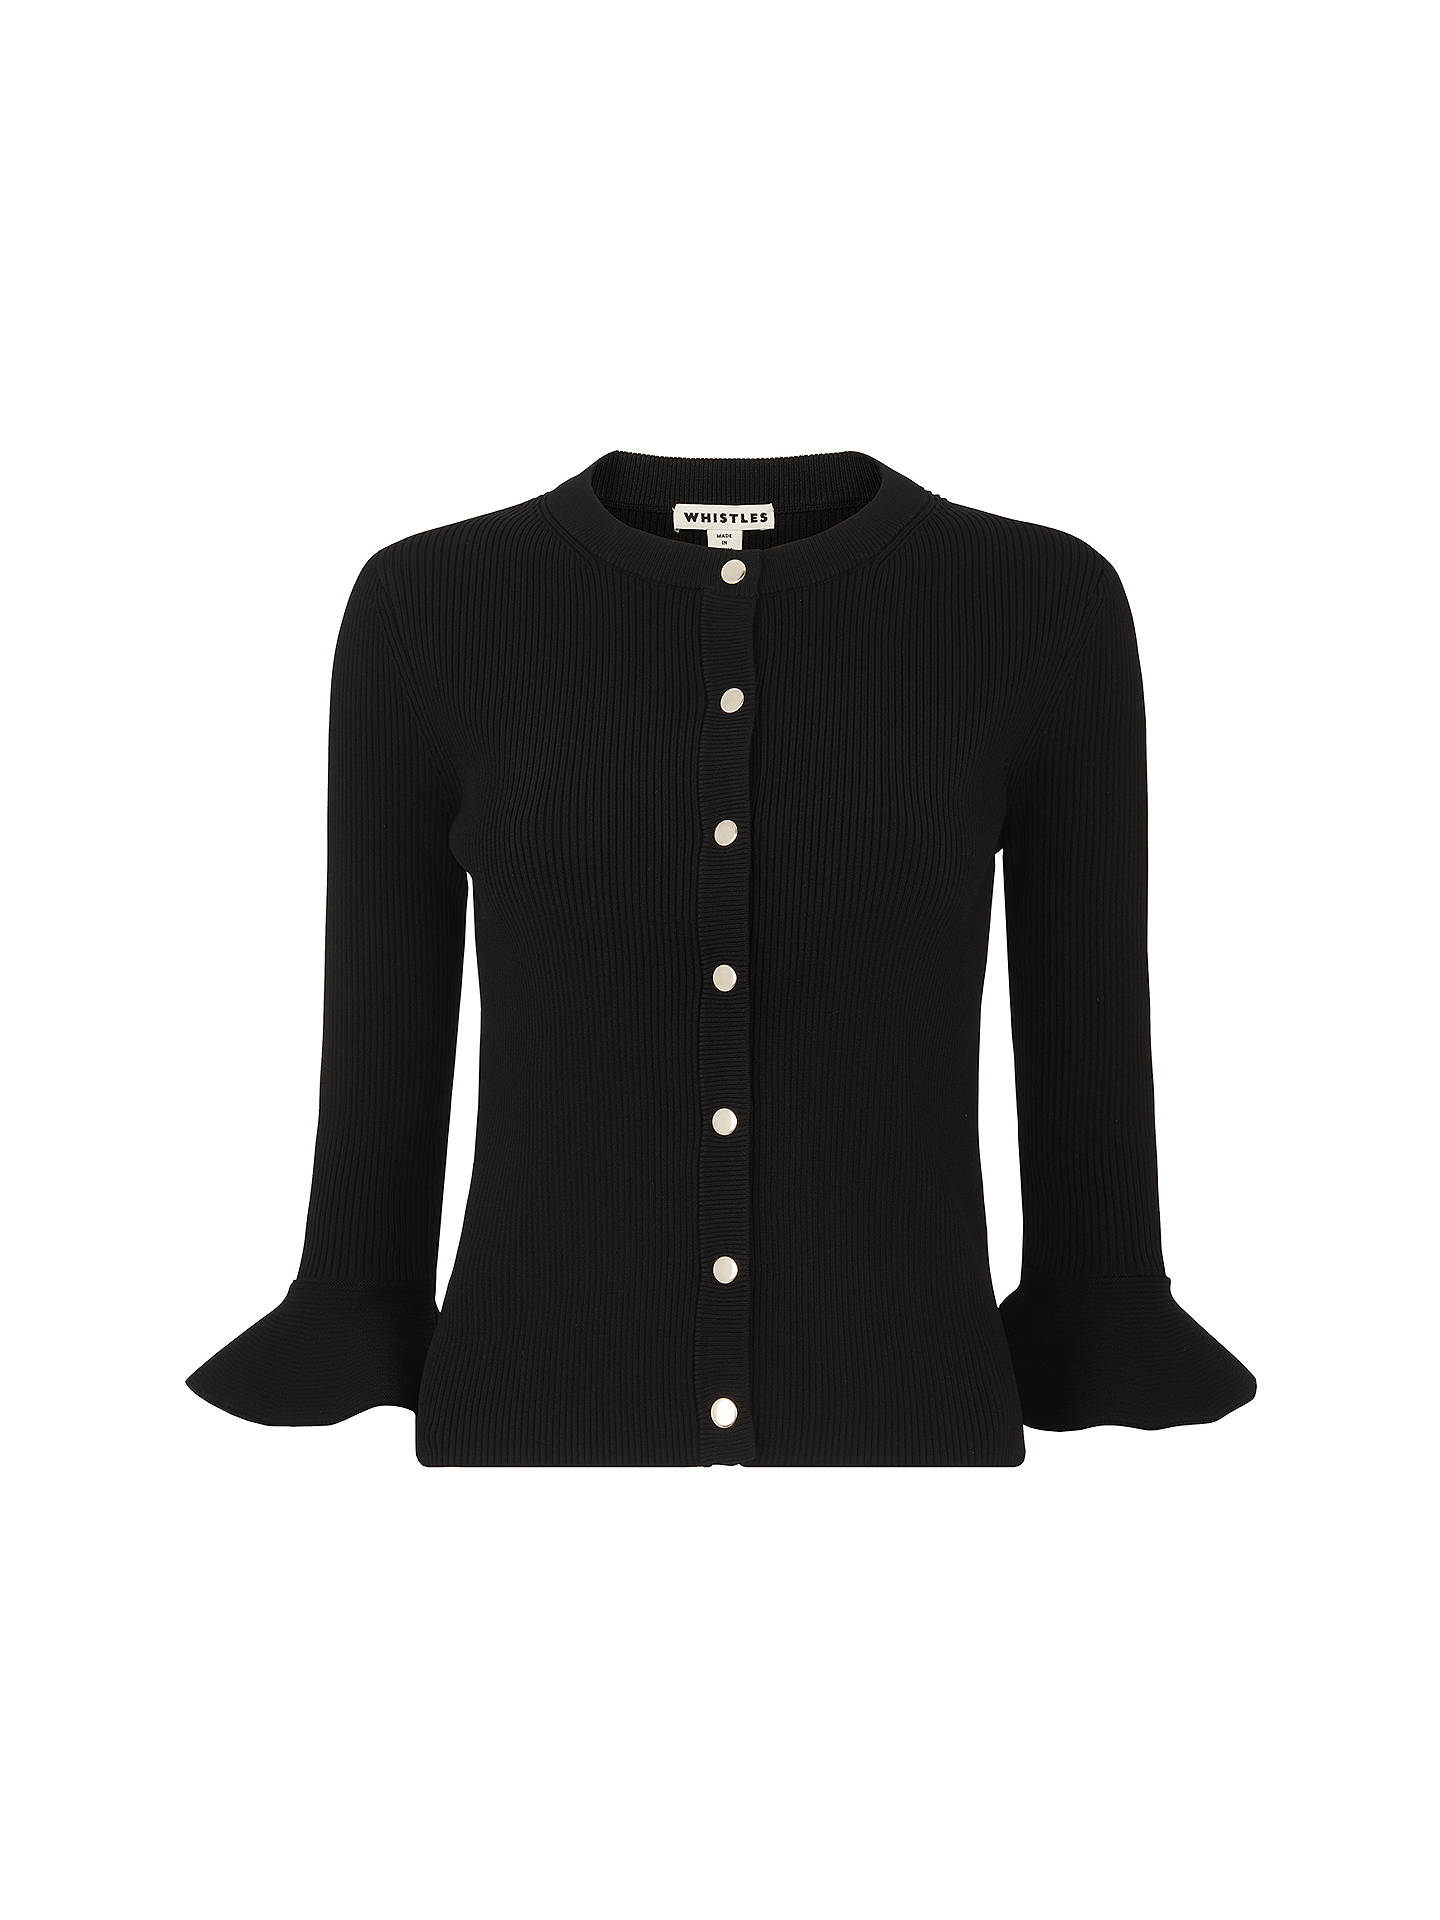 BuyWhistles Frill Cuff Knitted Cardigan, Black, XS Online at johnlewis.com